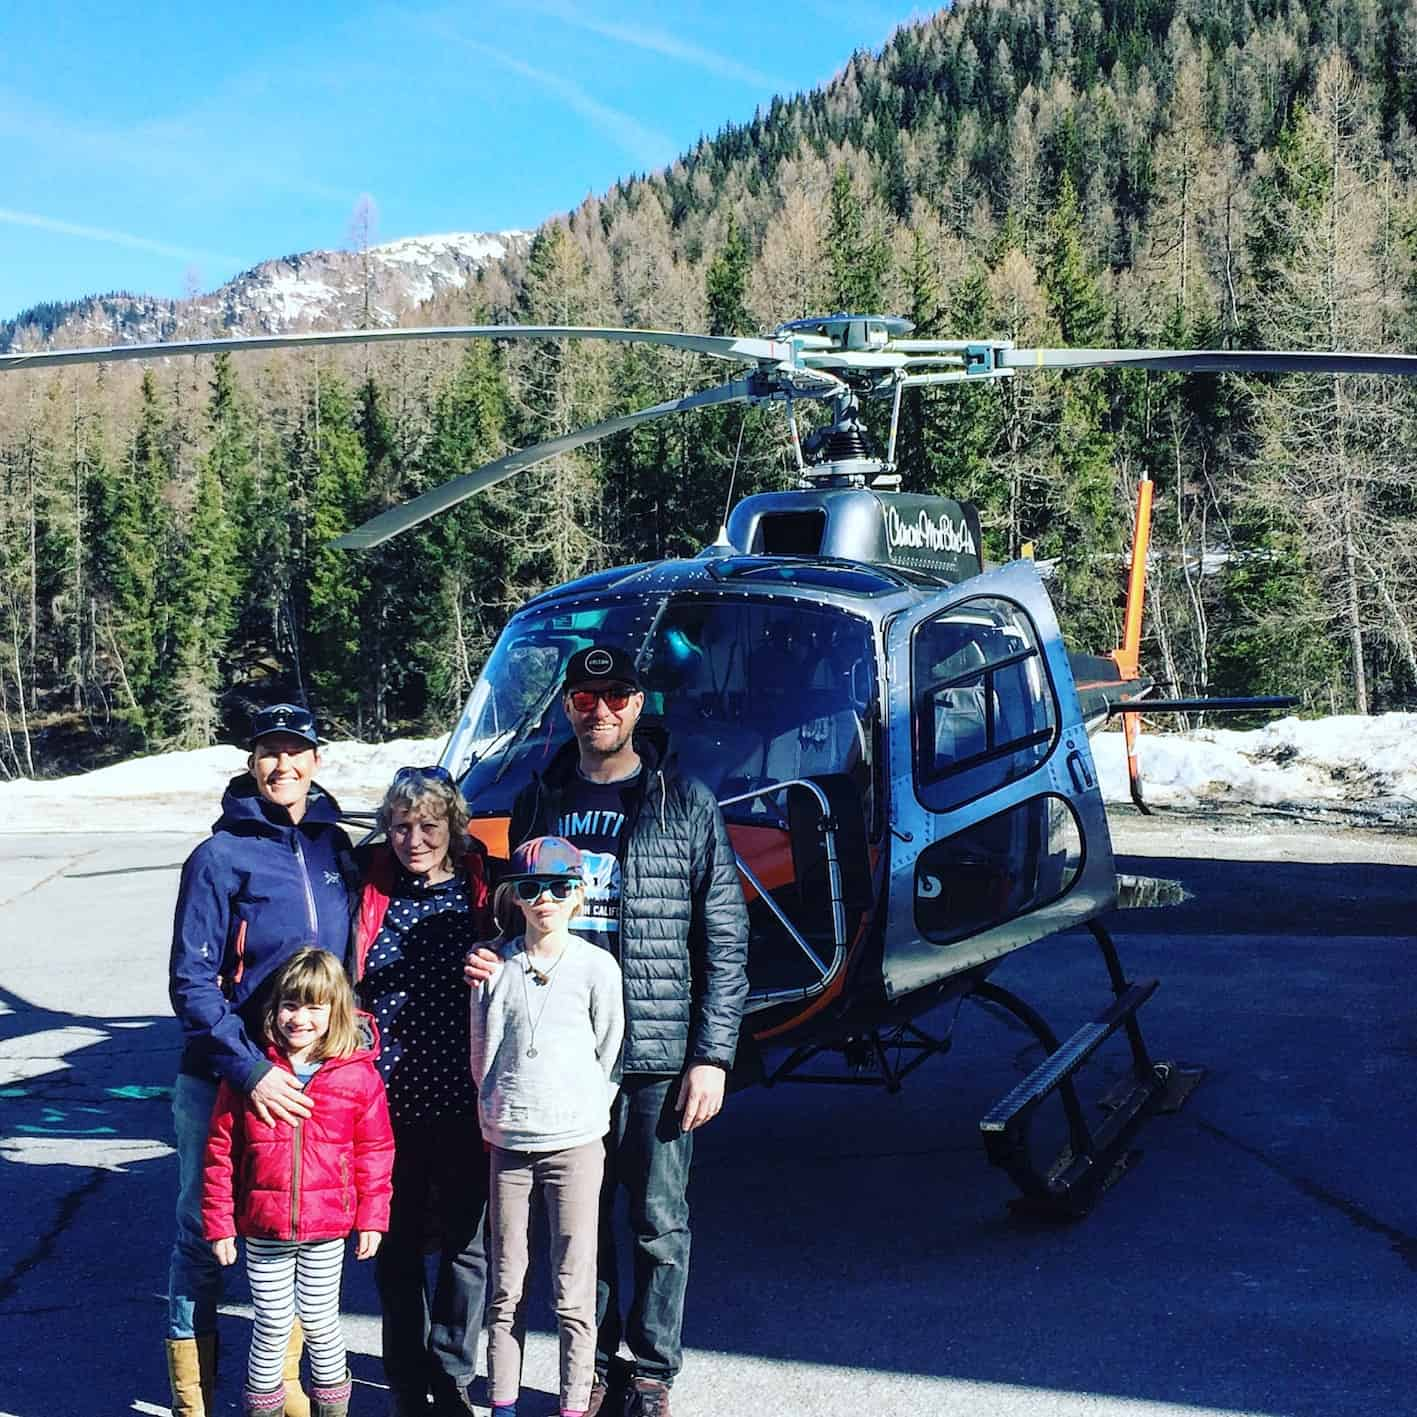 chamonix for families, mont blanc helicopters, vol hélicoptère mont blanc, chamonix helicopter tour price